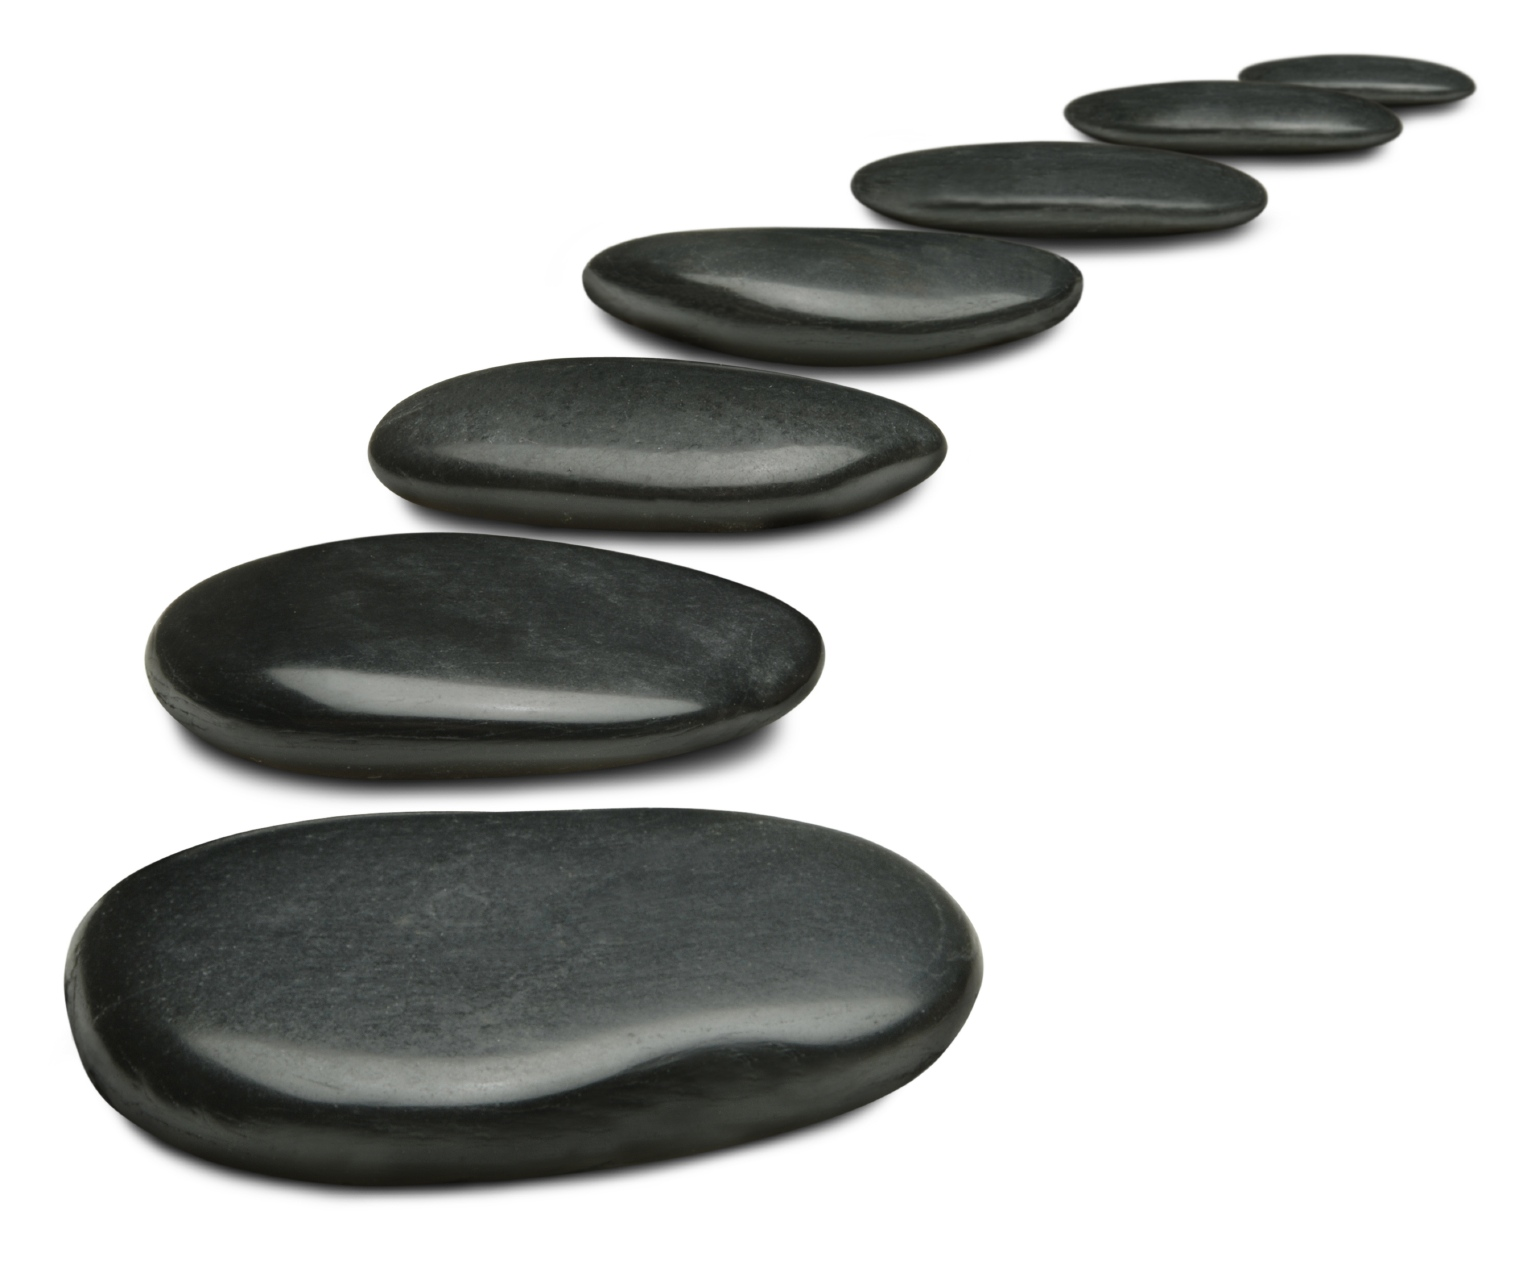 Stepping stones clipart.